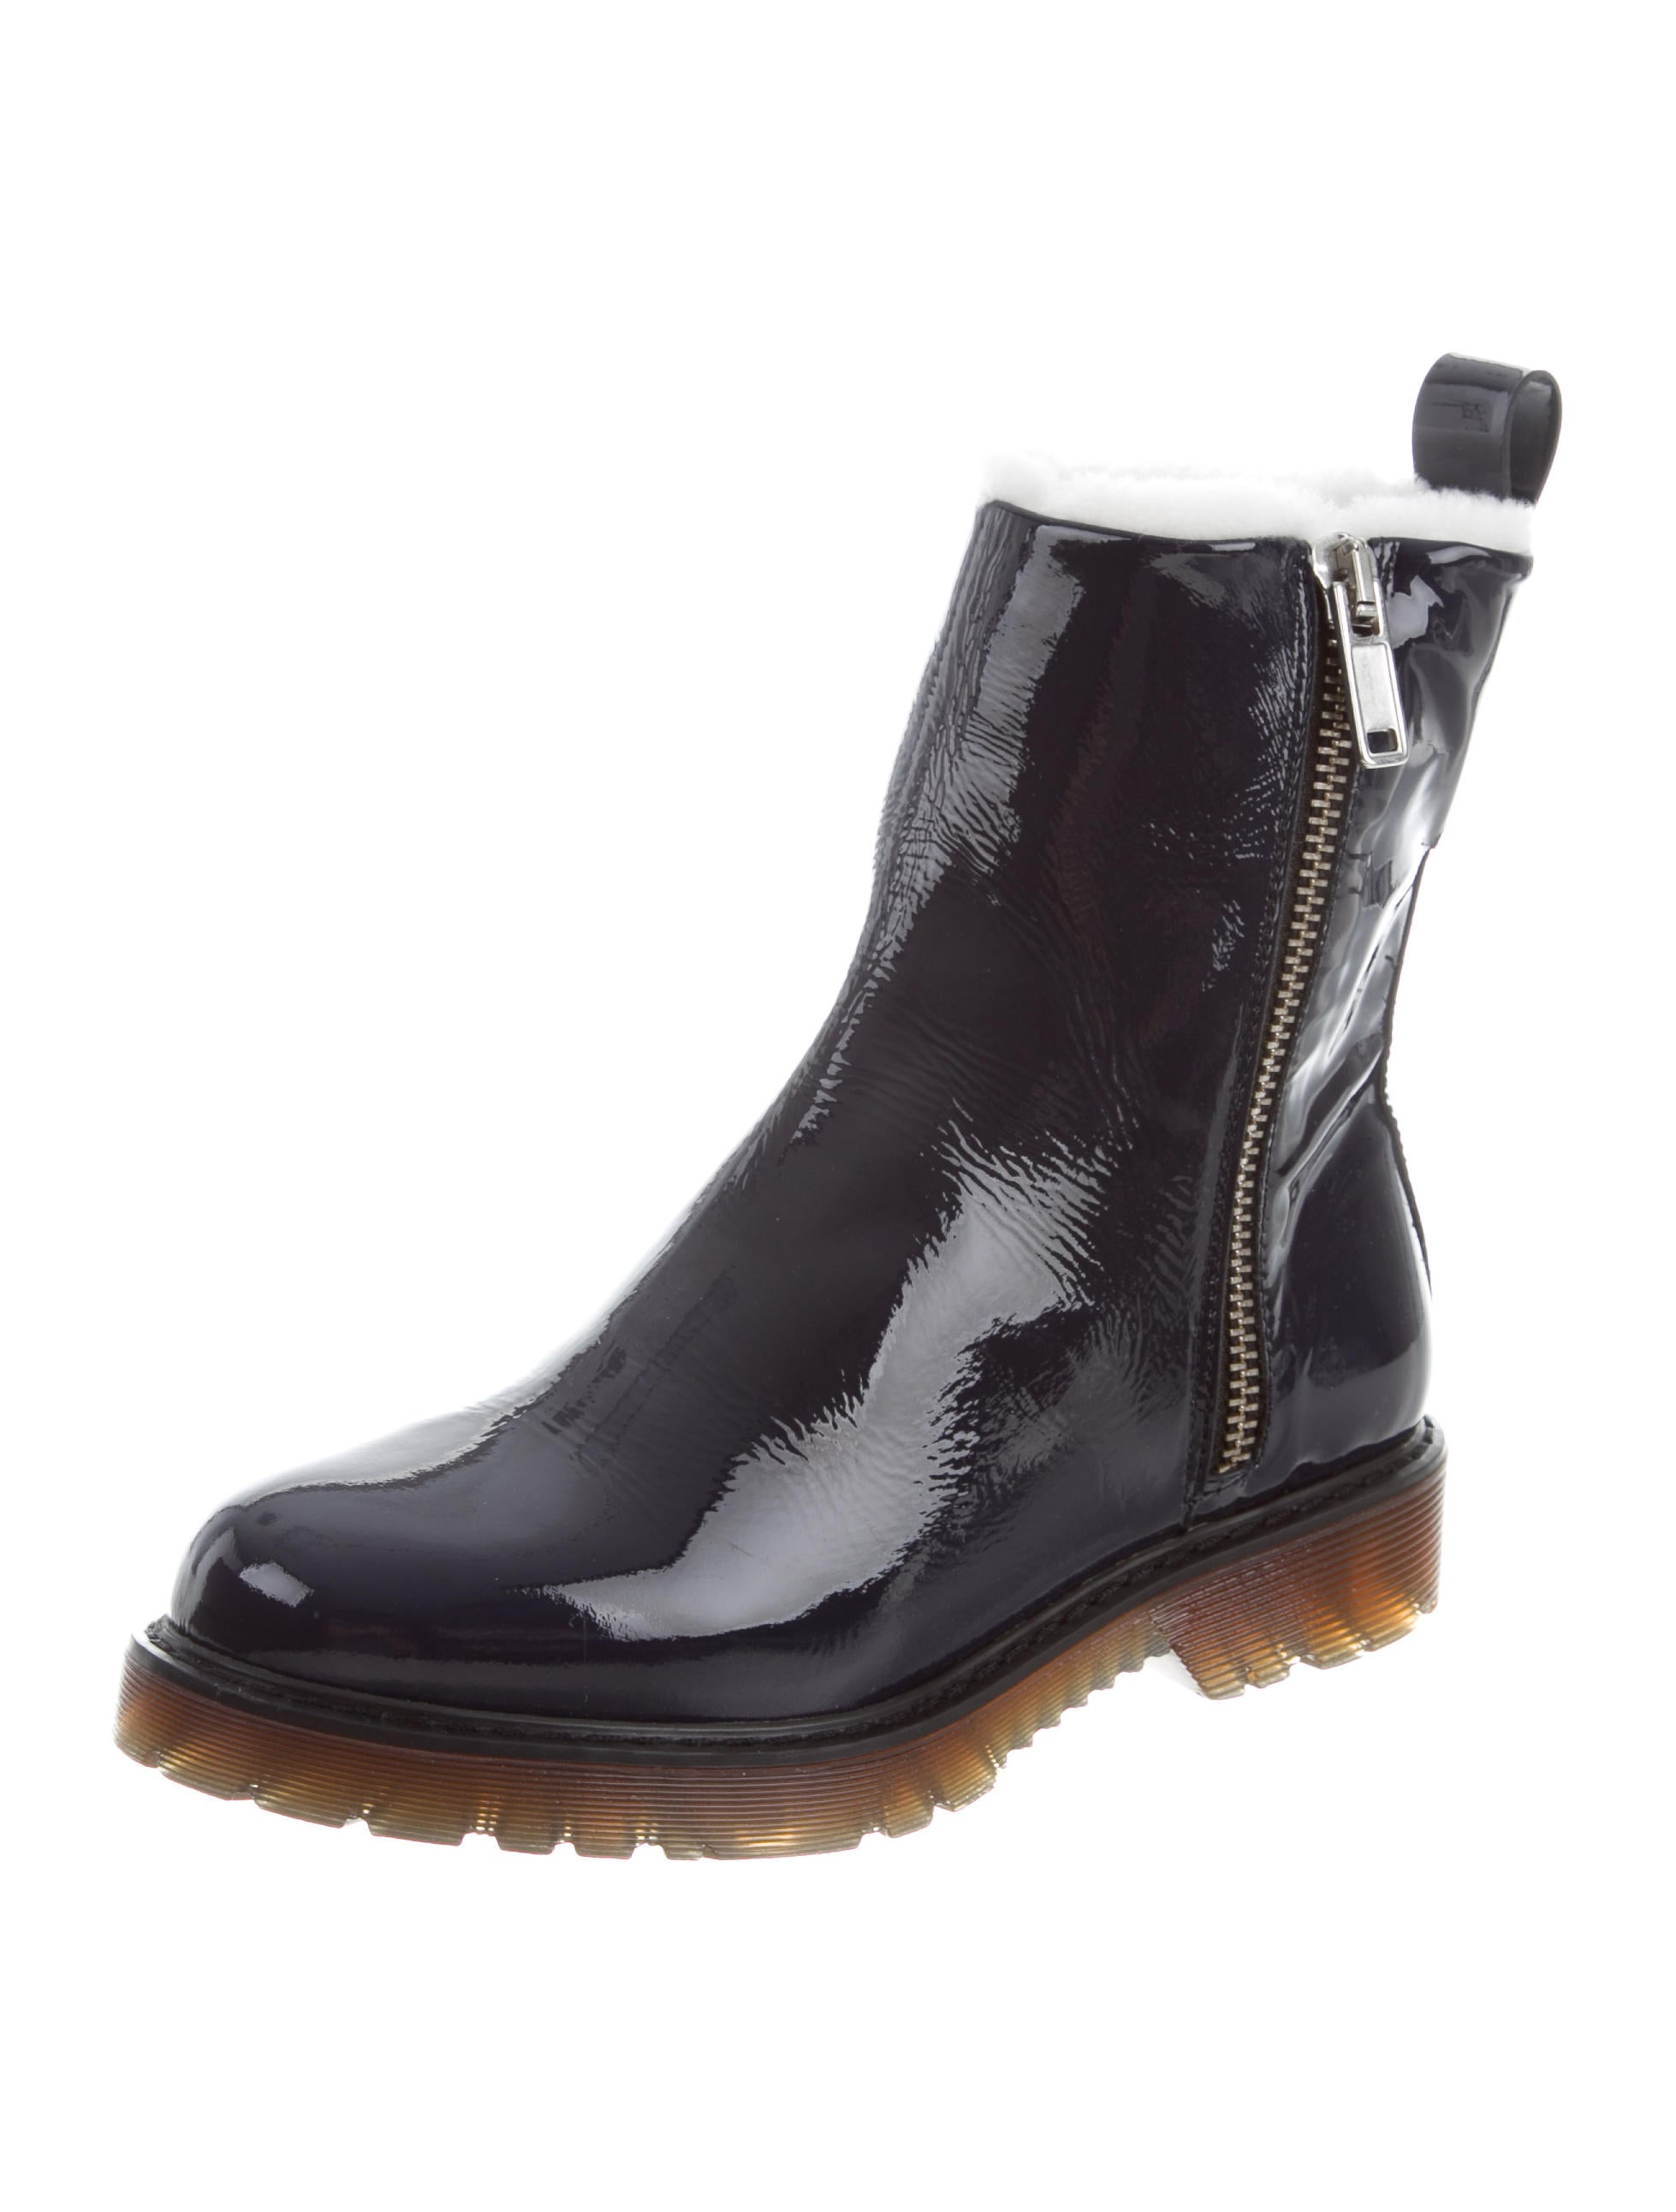 free shipping recommend McQ Alexander McQueen McQ by Alexander McQueen Shearling-Lined Patent Leather Ankle Boots w/ Tags buy cheap under $60 outlet high quality HF07zSw